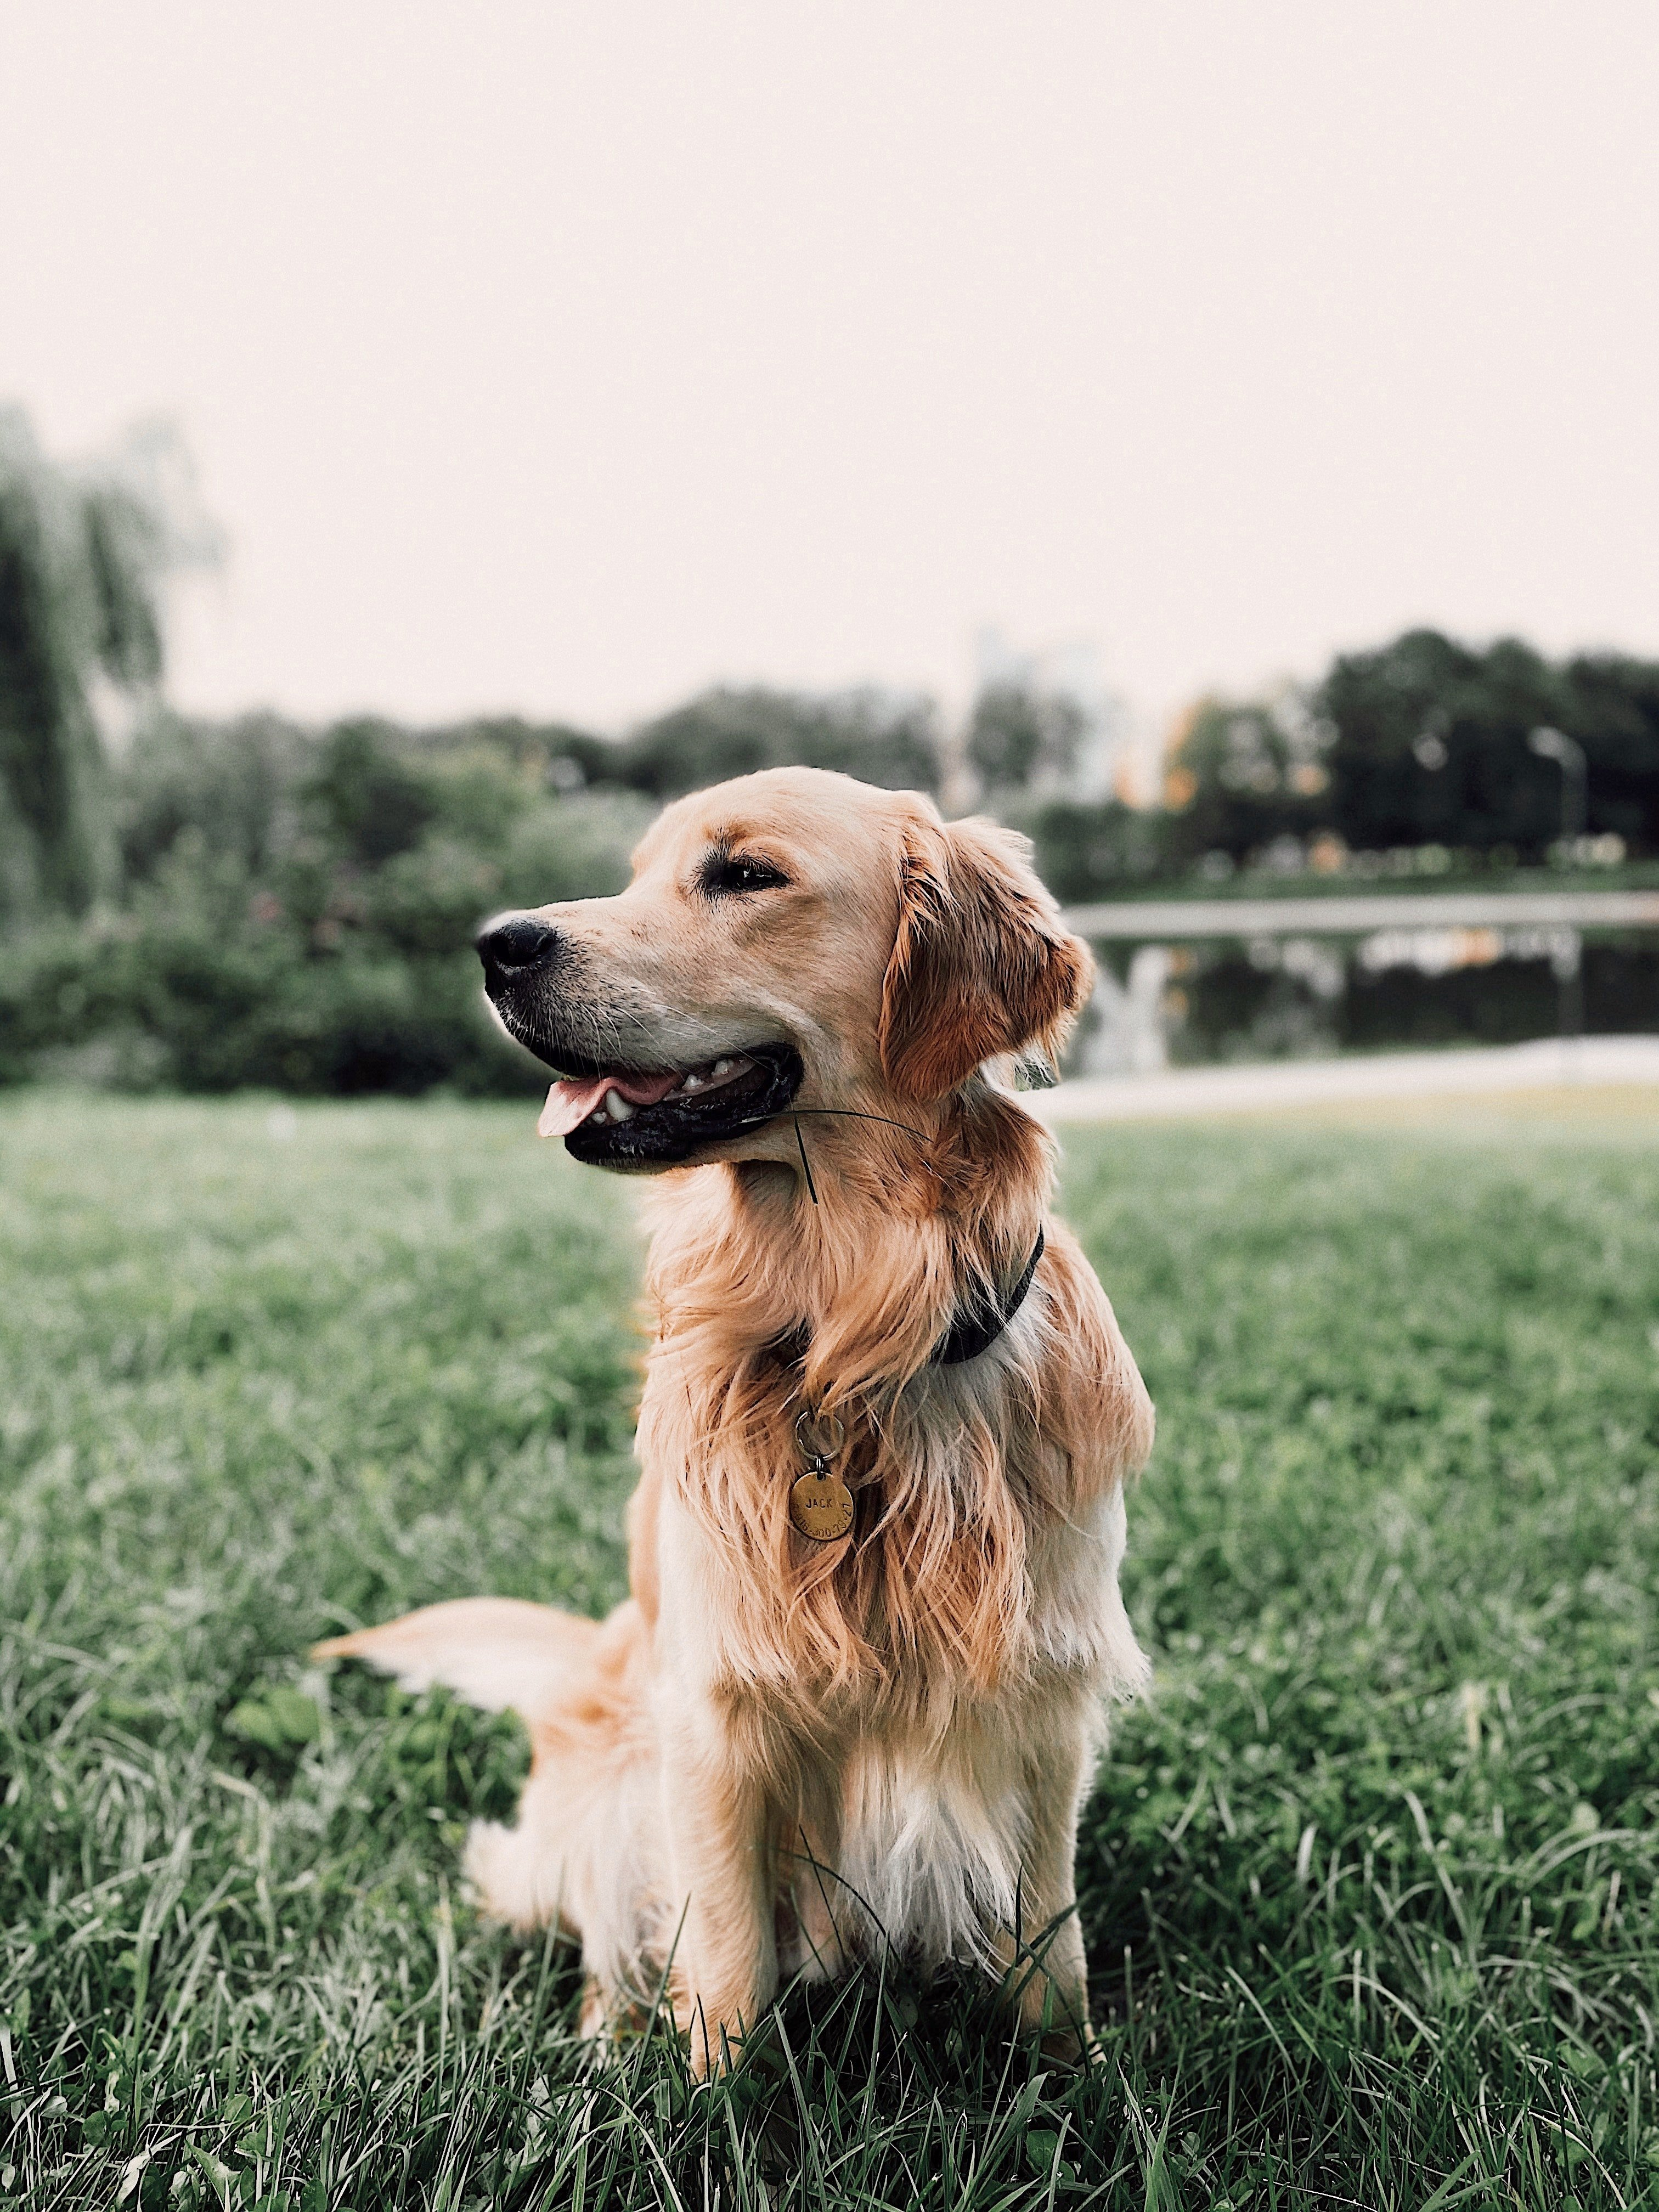 Pictured - A golden retriever on a grassy lawn | Source: Pexels